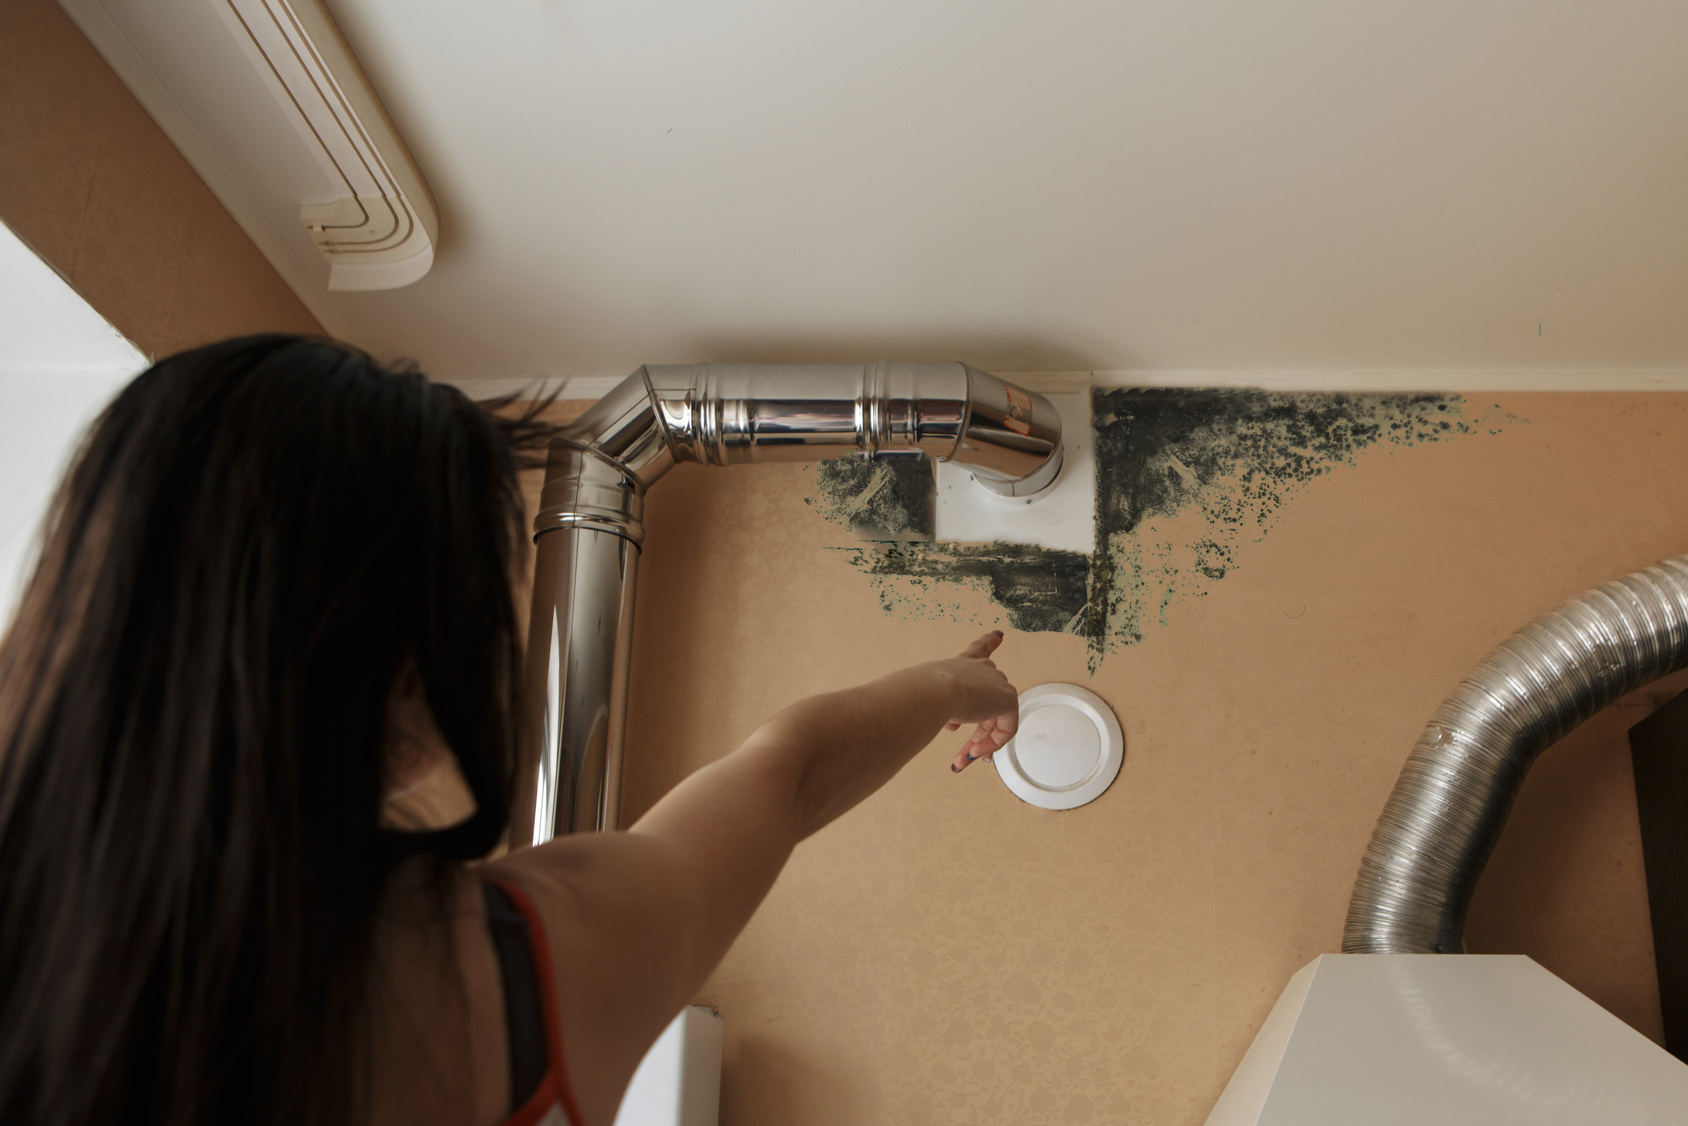 How Long Does It Take For Mold To Grow Servicemaster In